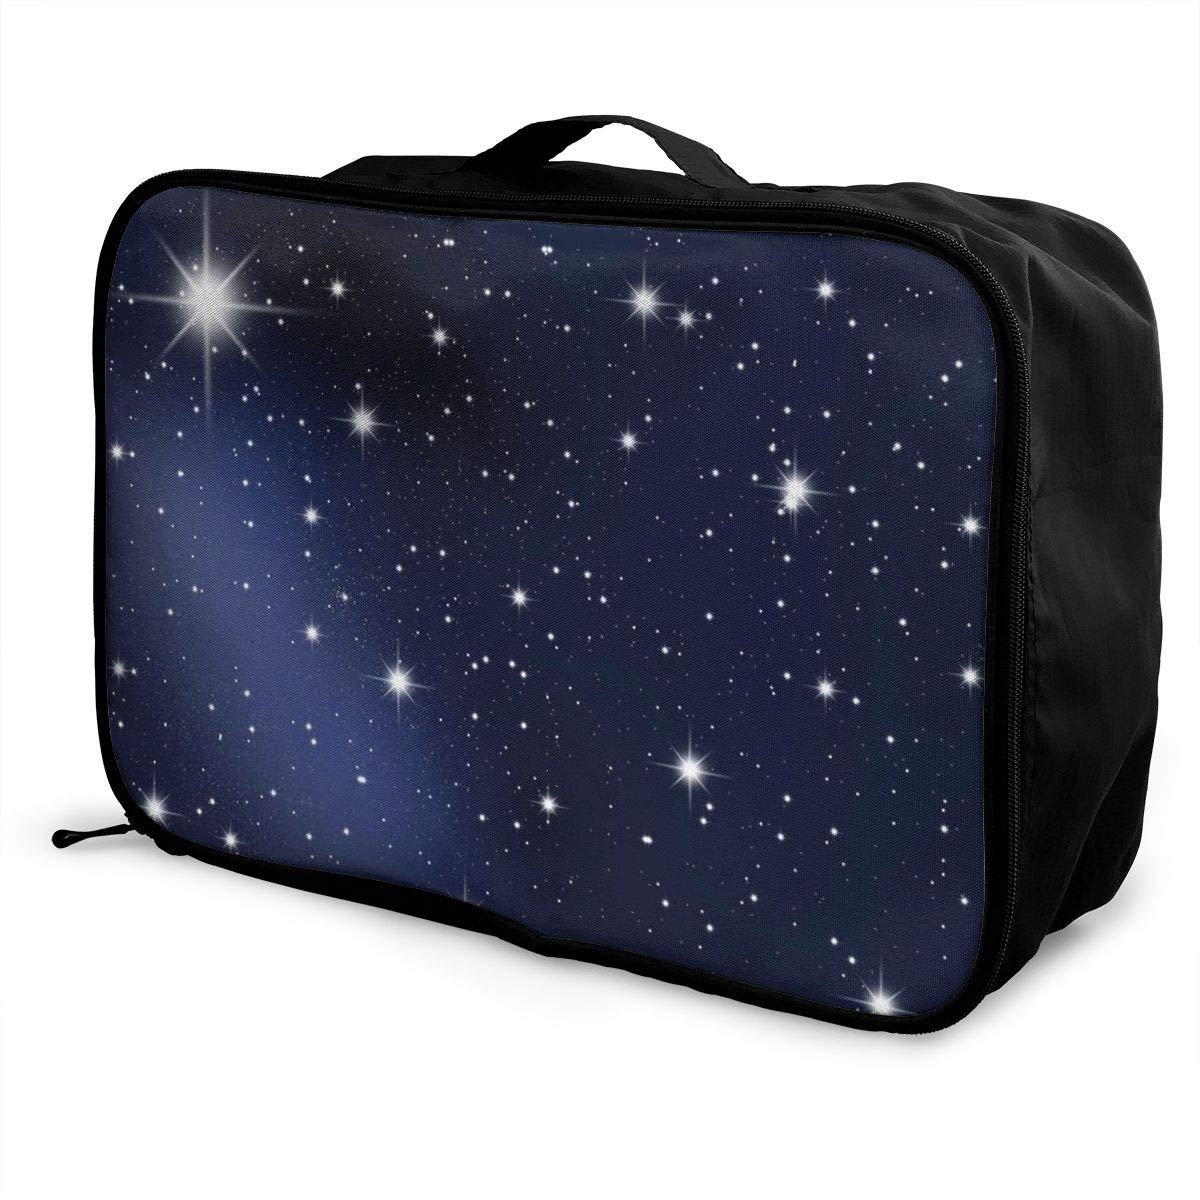 Moon Navy Blue Stars Night Sky Travel Lightweight Waterproof Foldable Storage Carry Luggage Duffle Tote Bag Large Capacity In Trolley Handle Bags 6x11x15 Inch